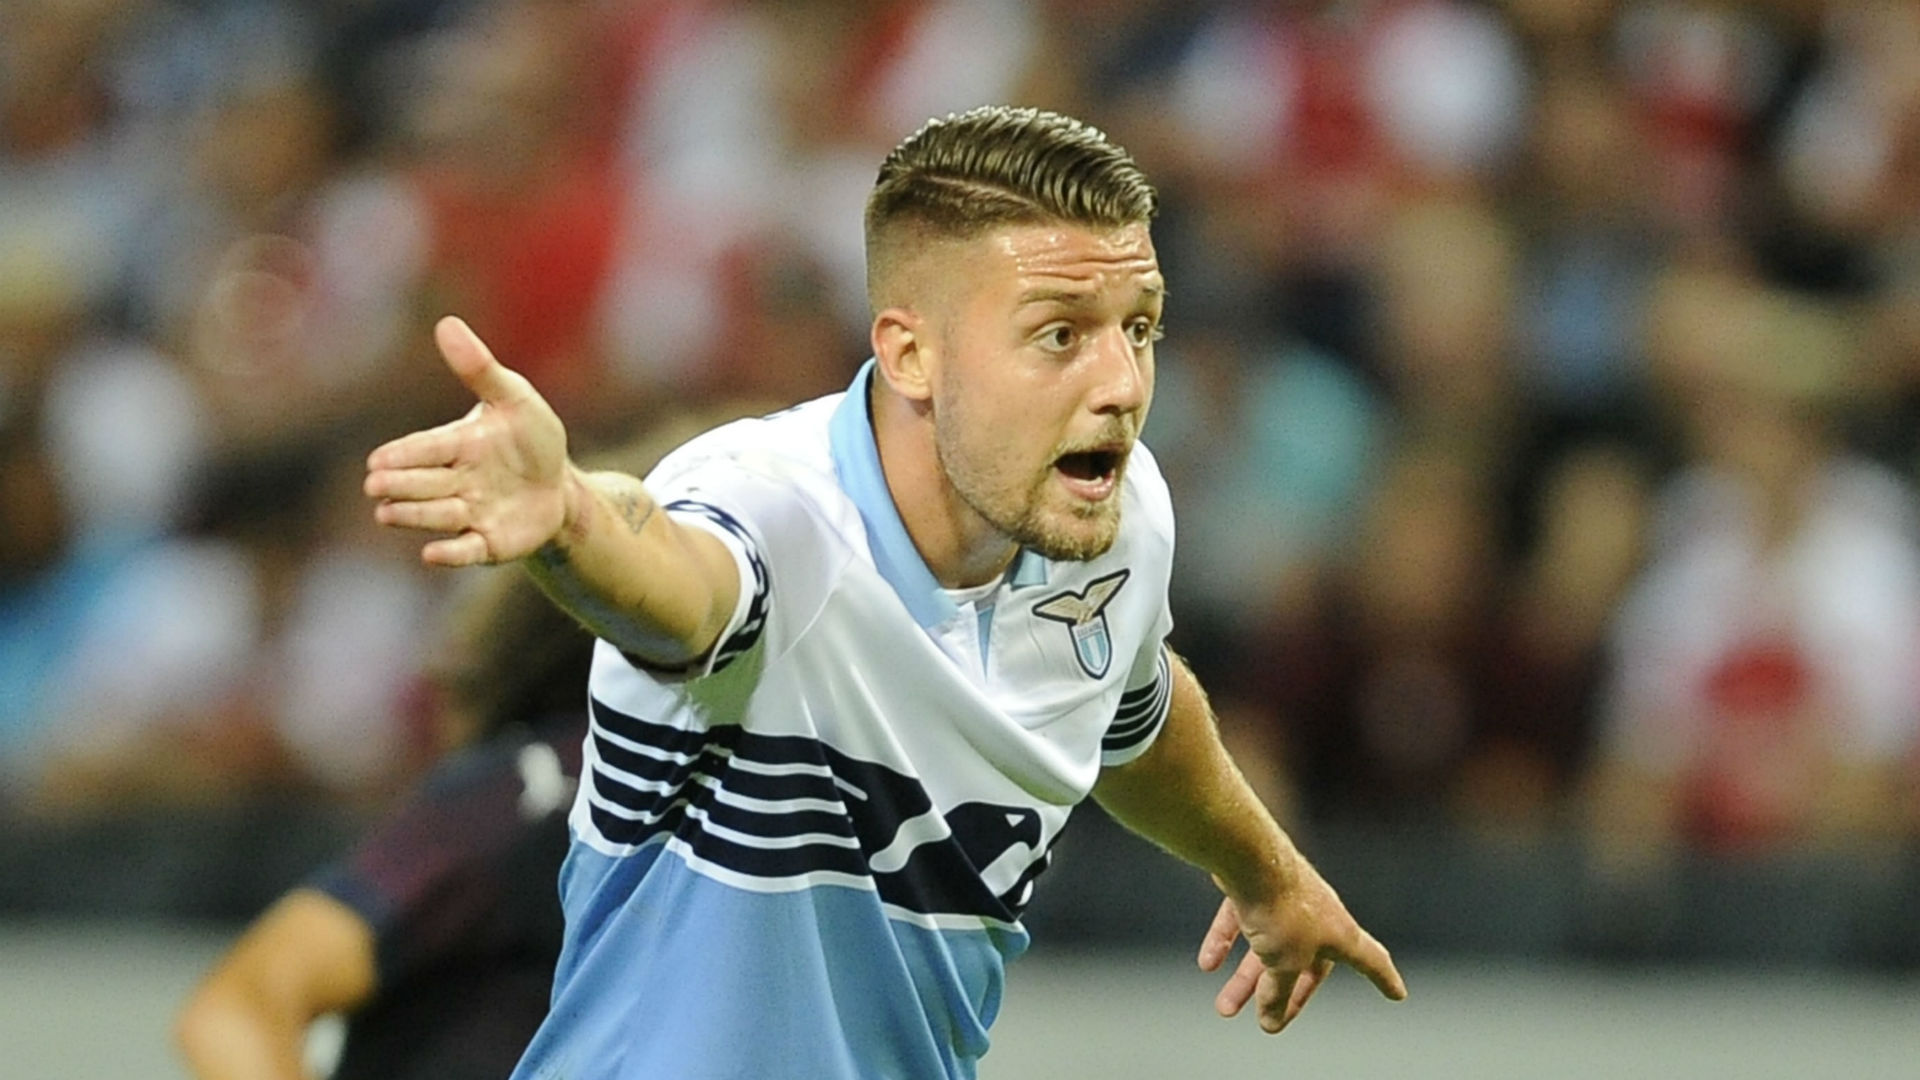 'World's best' youngster Milinkovic-Savic worth more than Pogba, says Lazio president